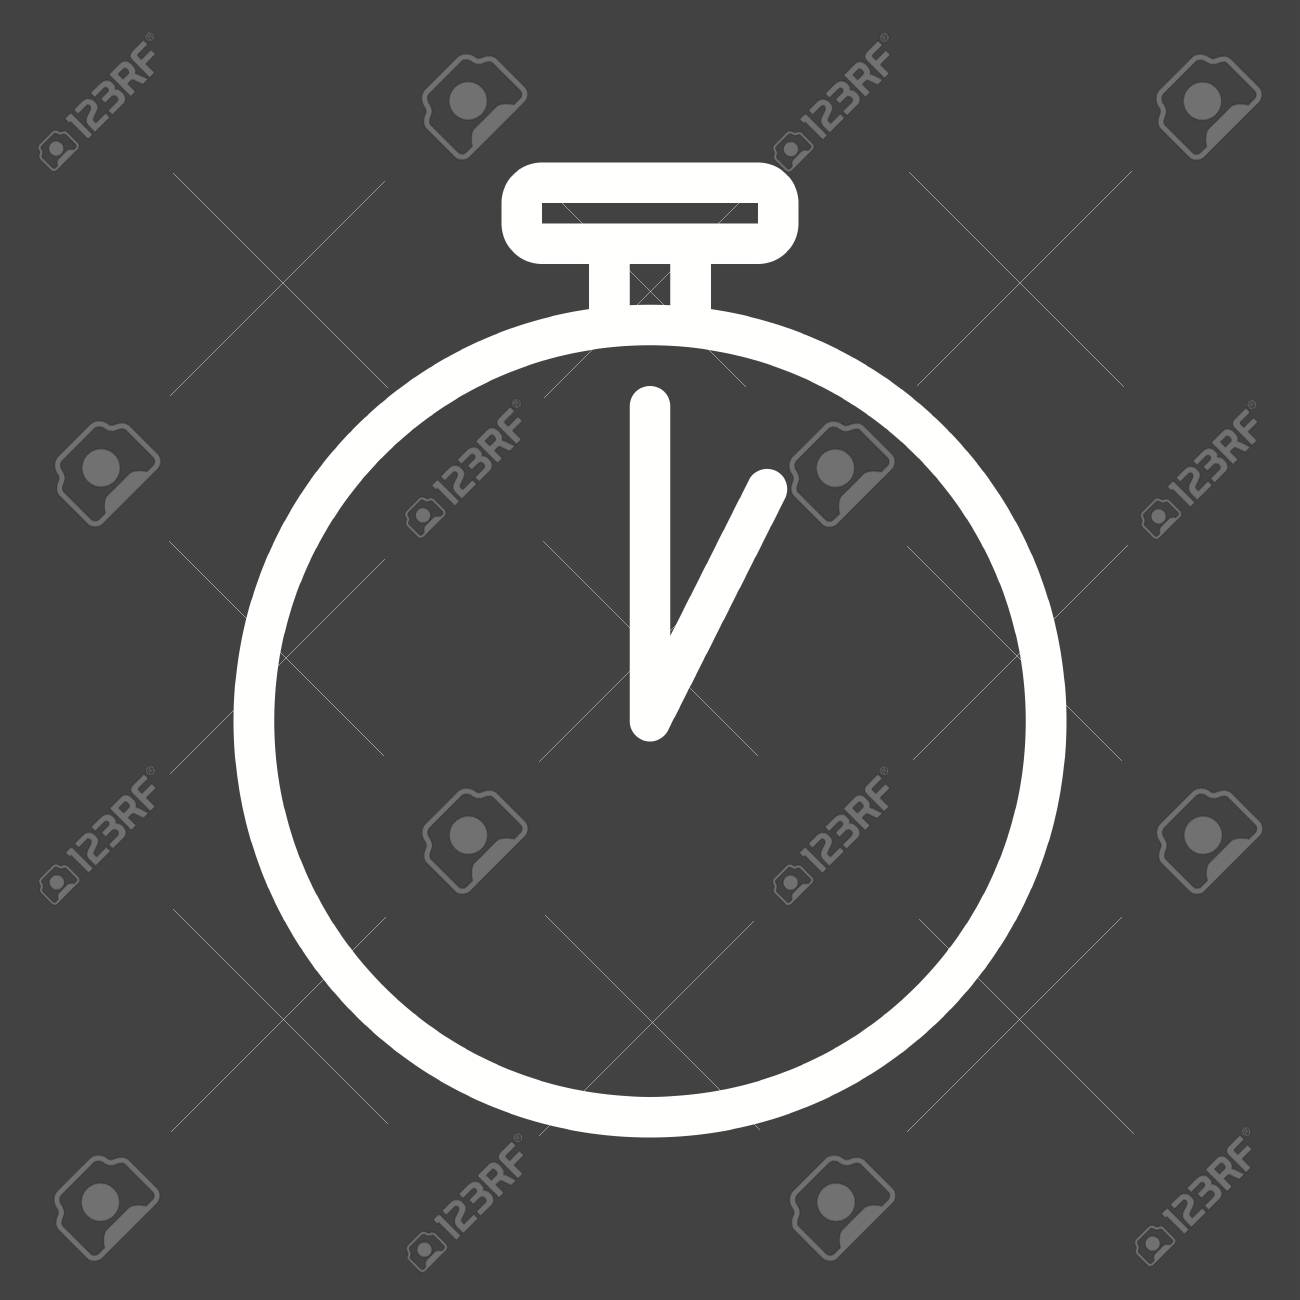 Camera Camera Timer App camera timer film icon vector image can also be used for picture editing